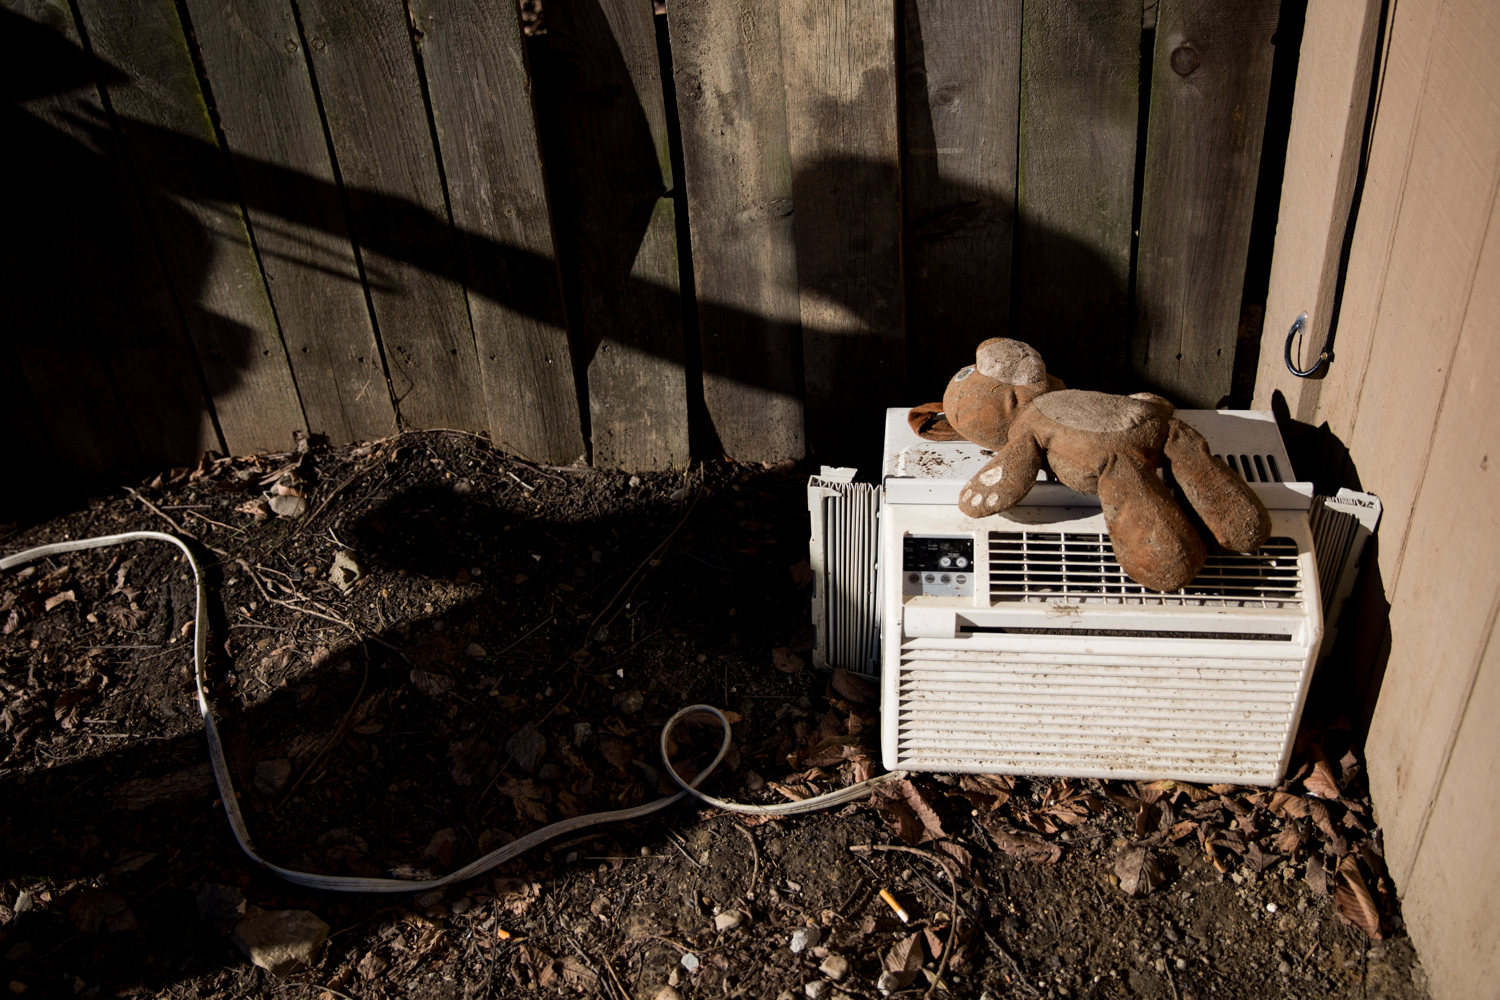 A stuffed animal that Paisley left out in the rain dries off on top of a discarded air conditioning unit.